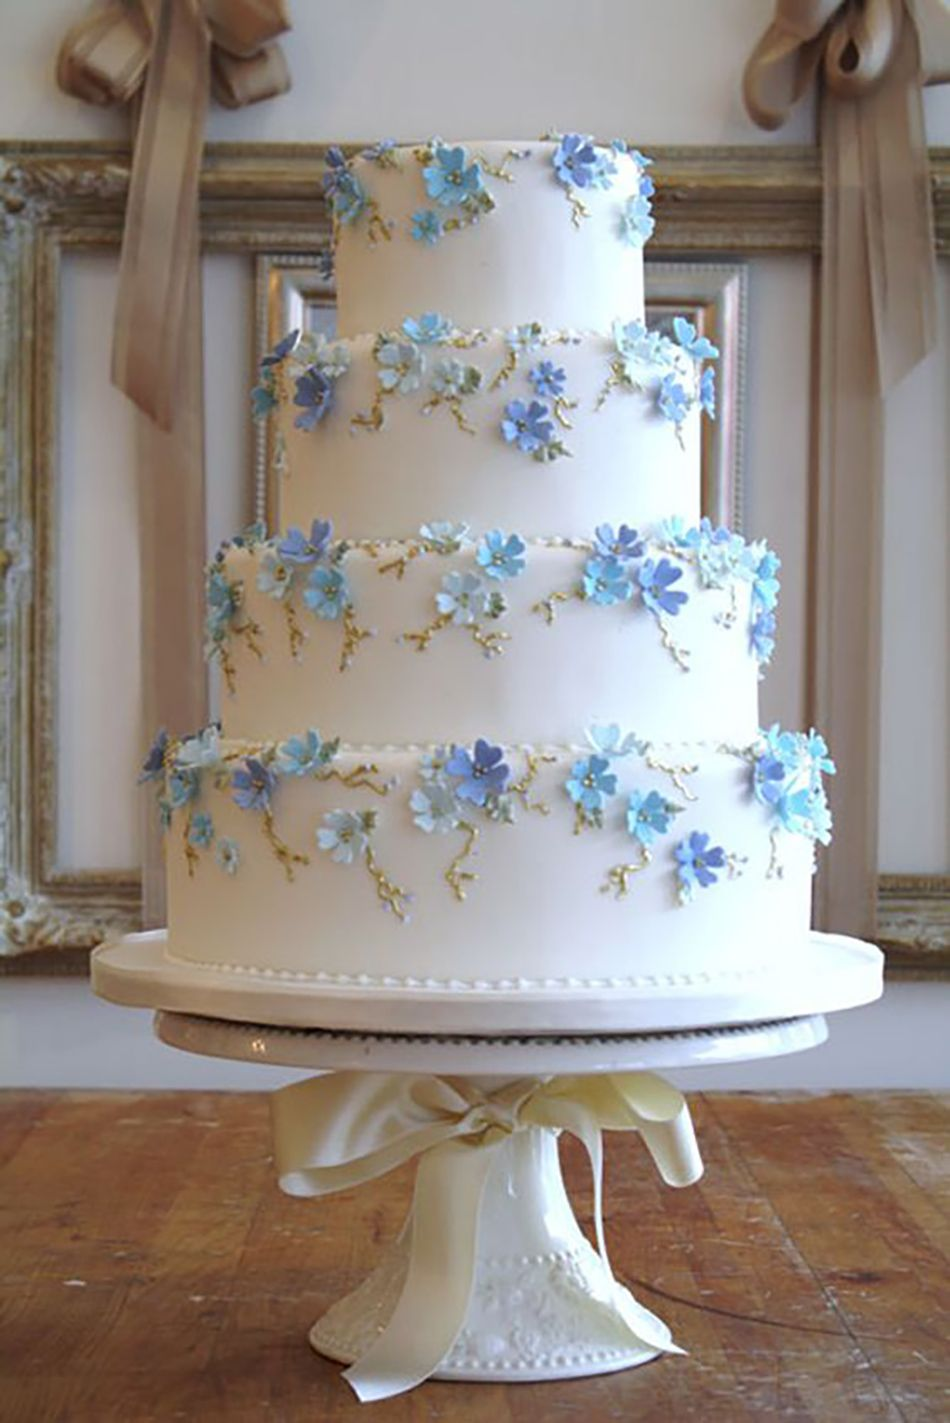 Tiered wedding cake with blue flowers wedding cakes pinterest blue wedding flowers wedding ideas chwv izmirmasajfo